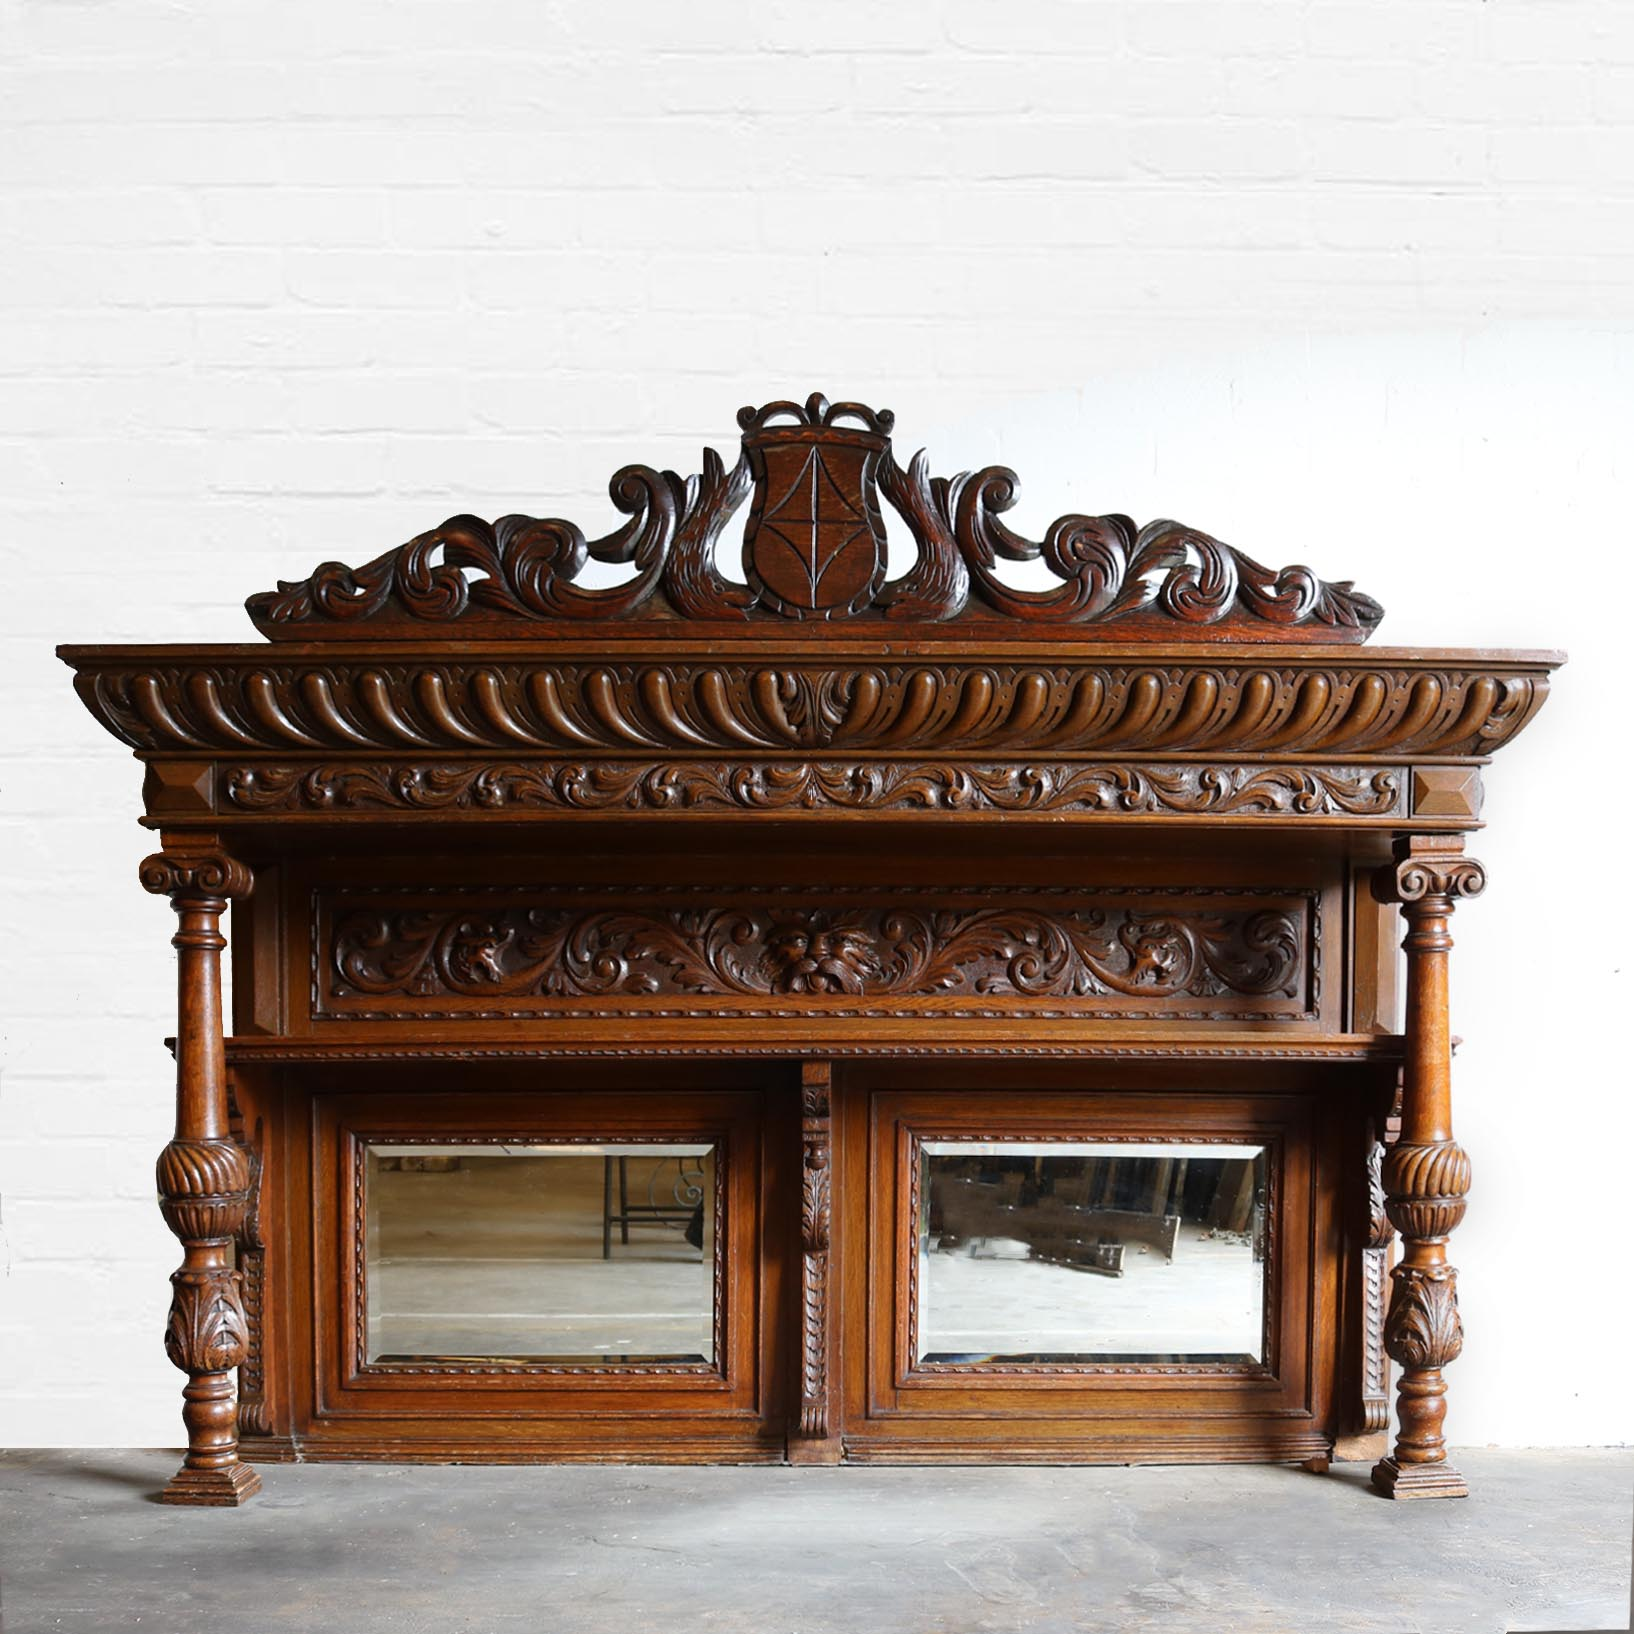 An ornately carved over mantel with shelf and bevelled mirrors